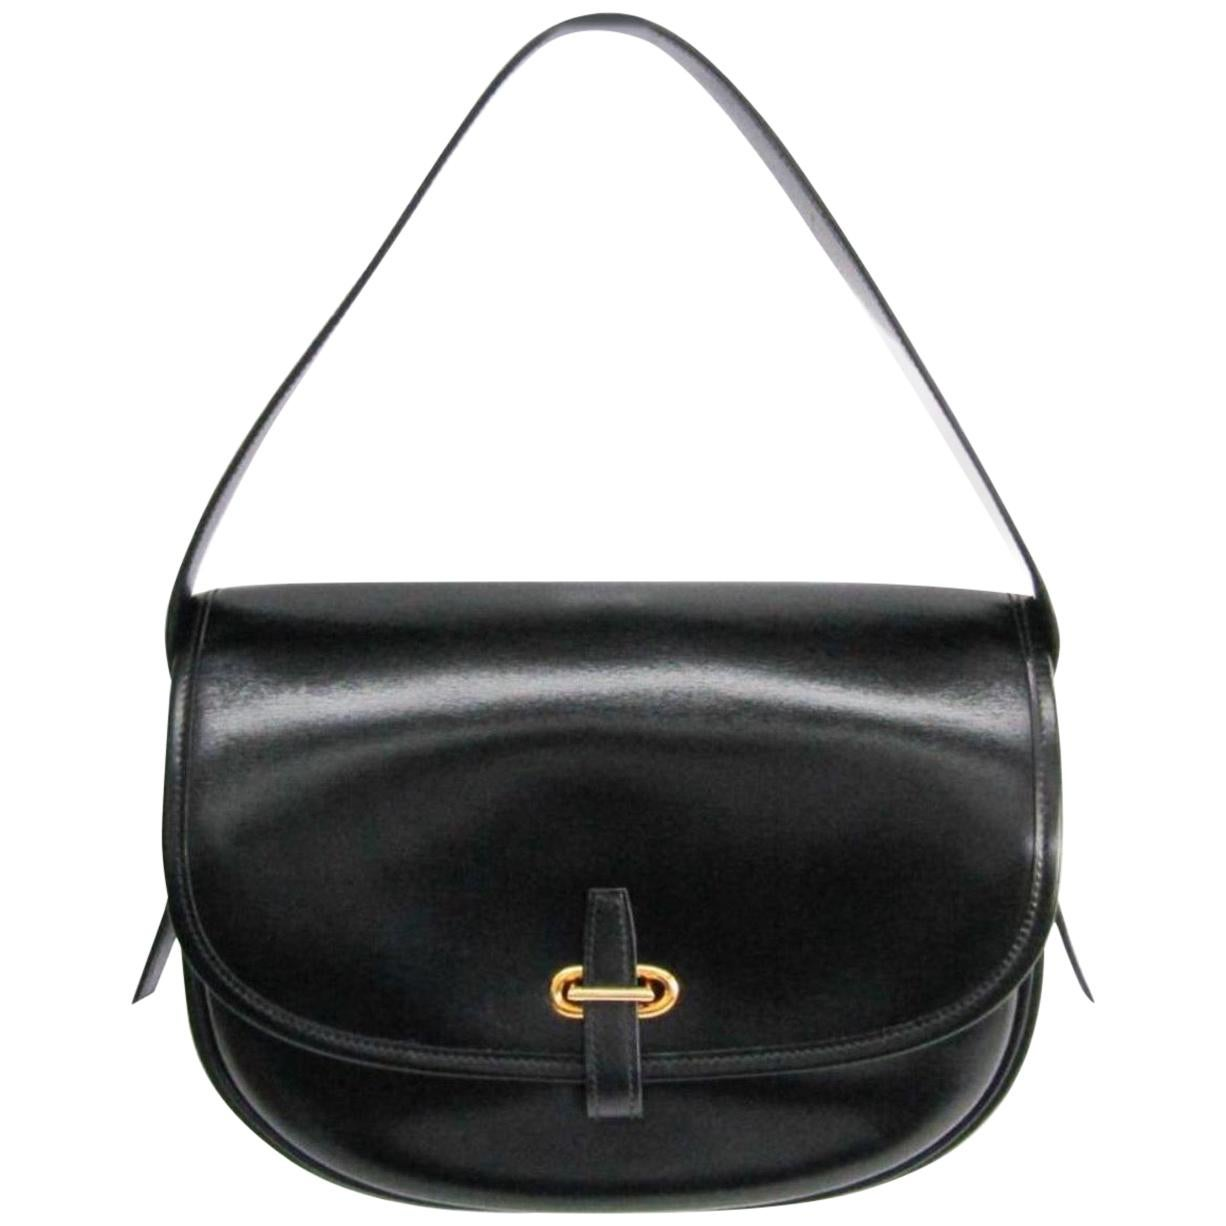 Hermes Black Leather Gold Hobo Carryall Evening Top HandleShoulder Flap Bag II